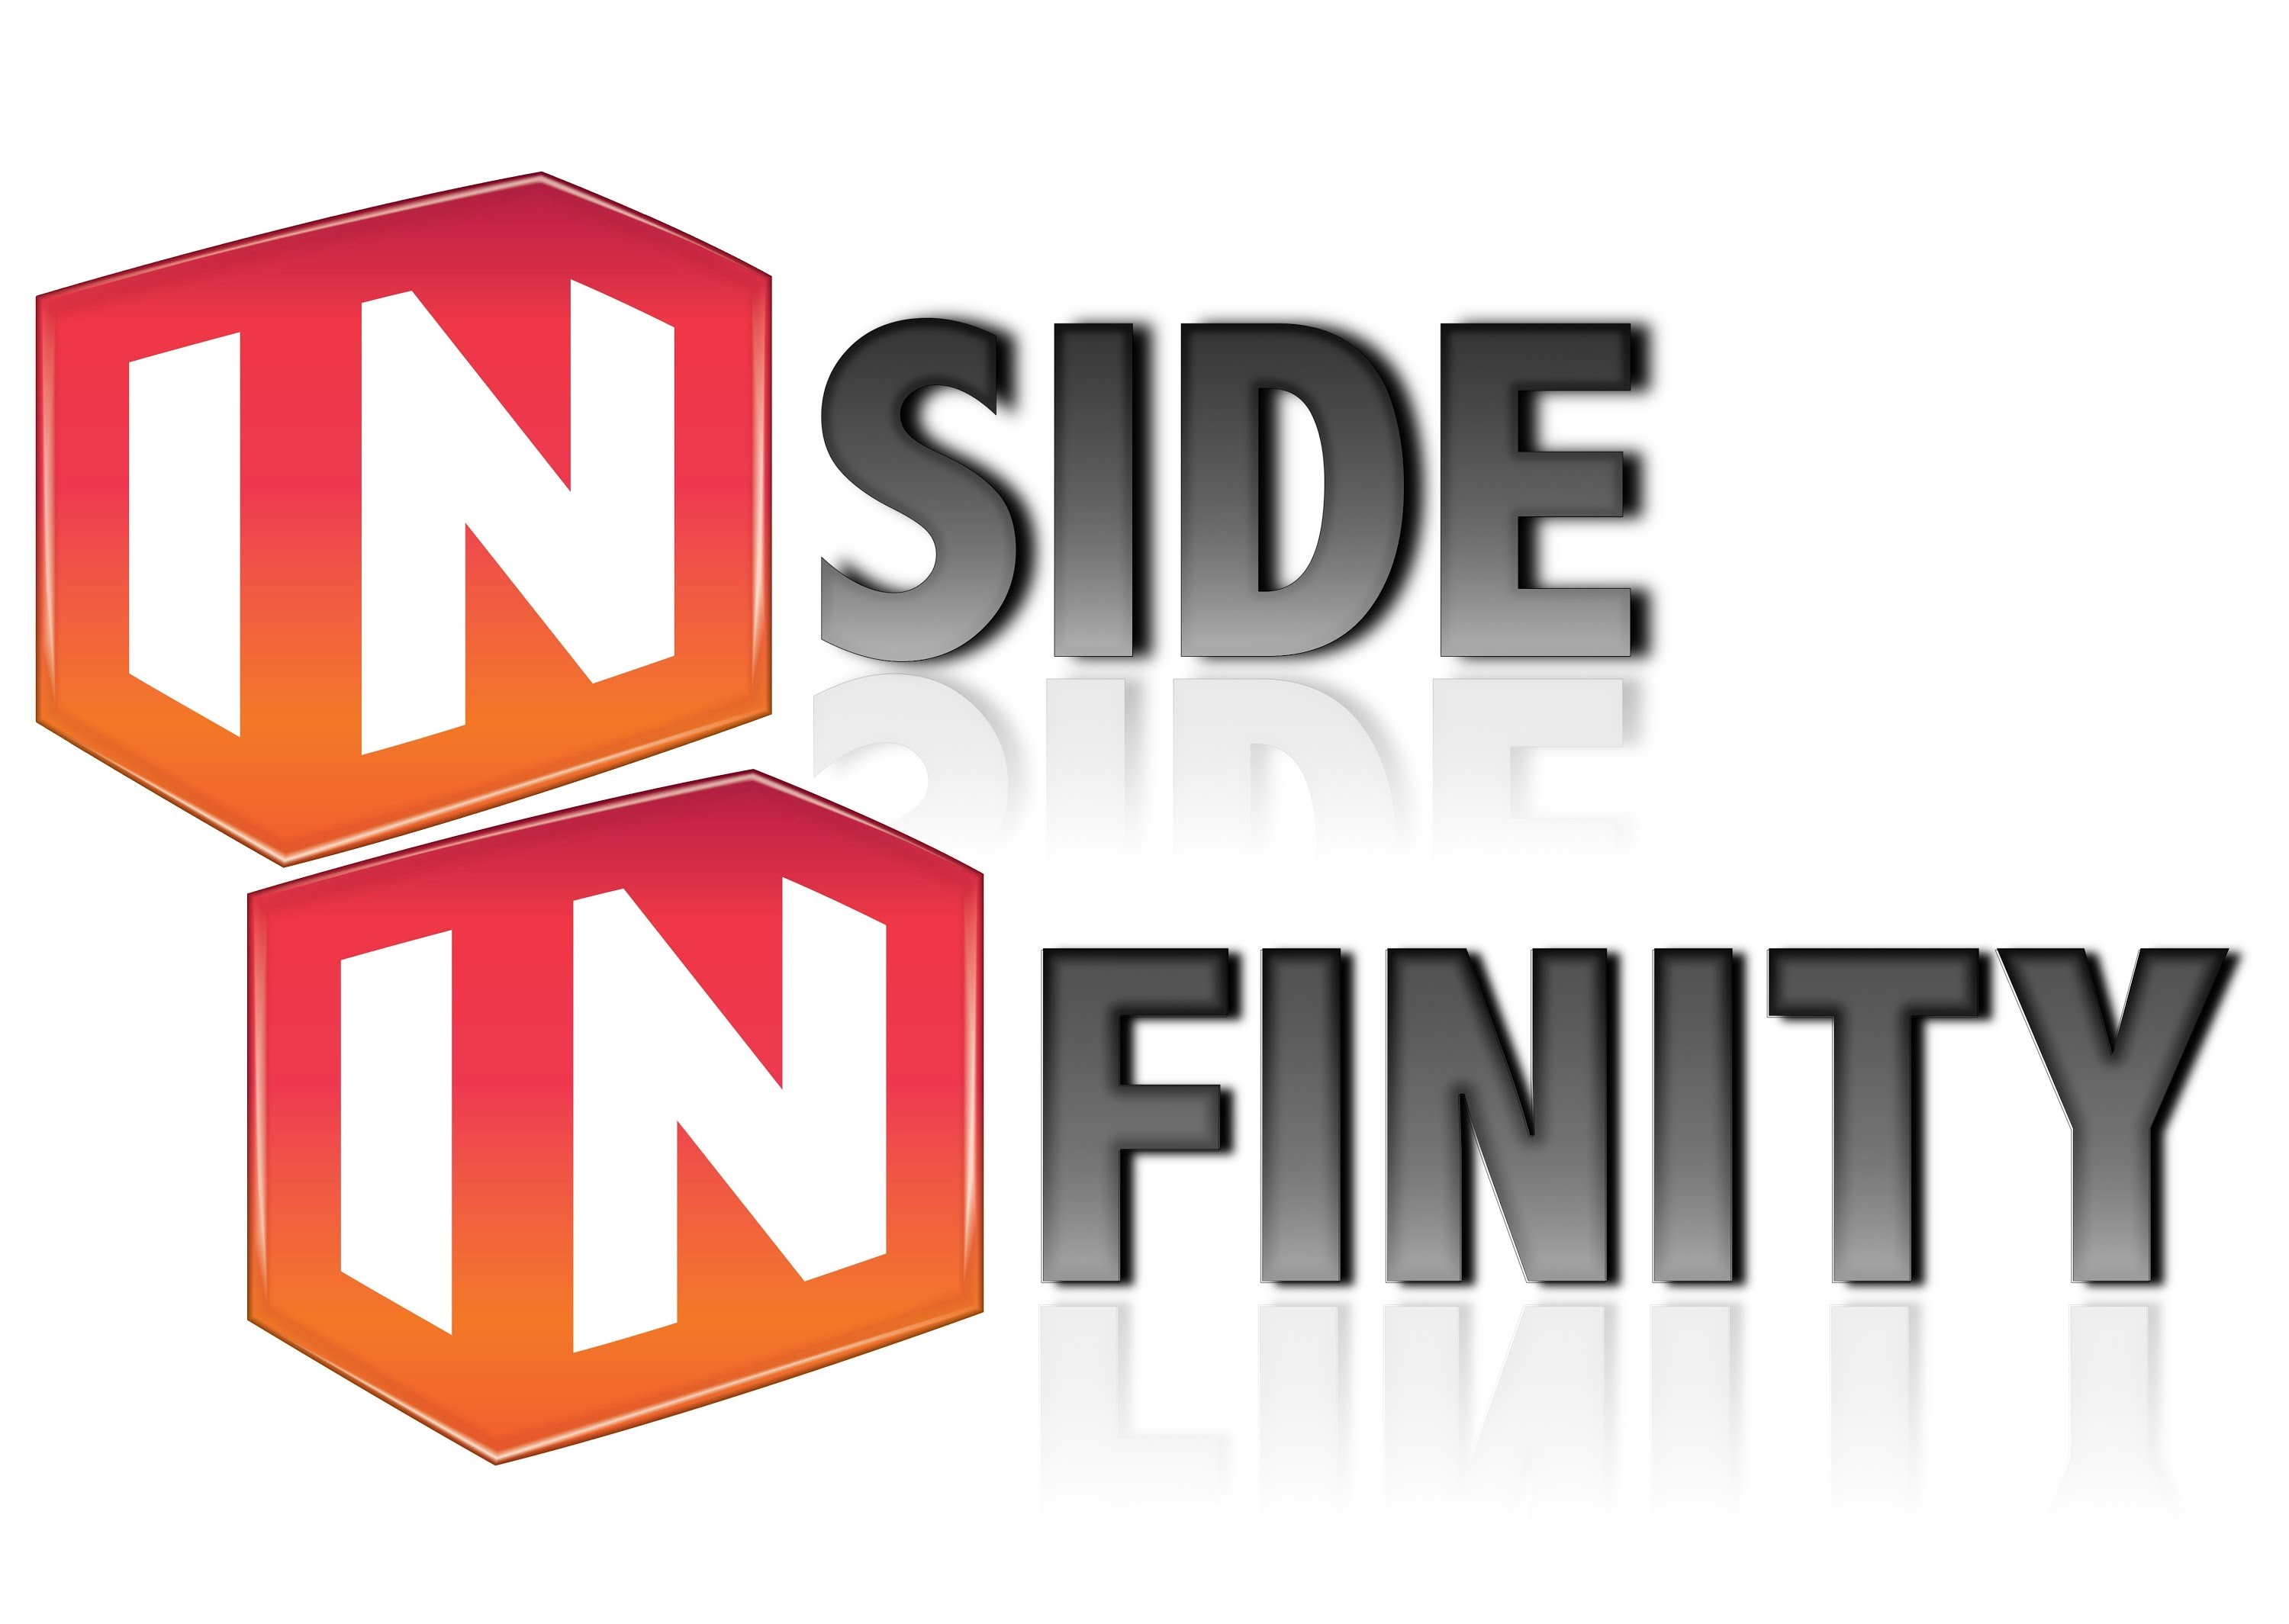 Inside Infinity 15 – October 28th, 2013